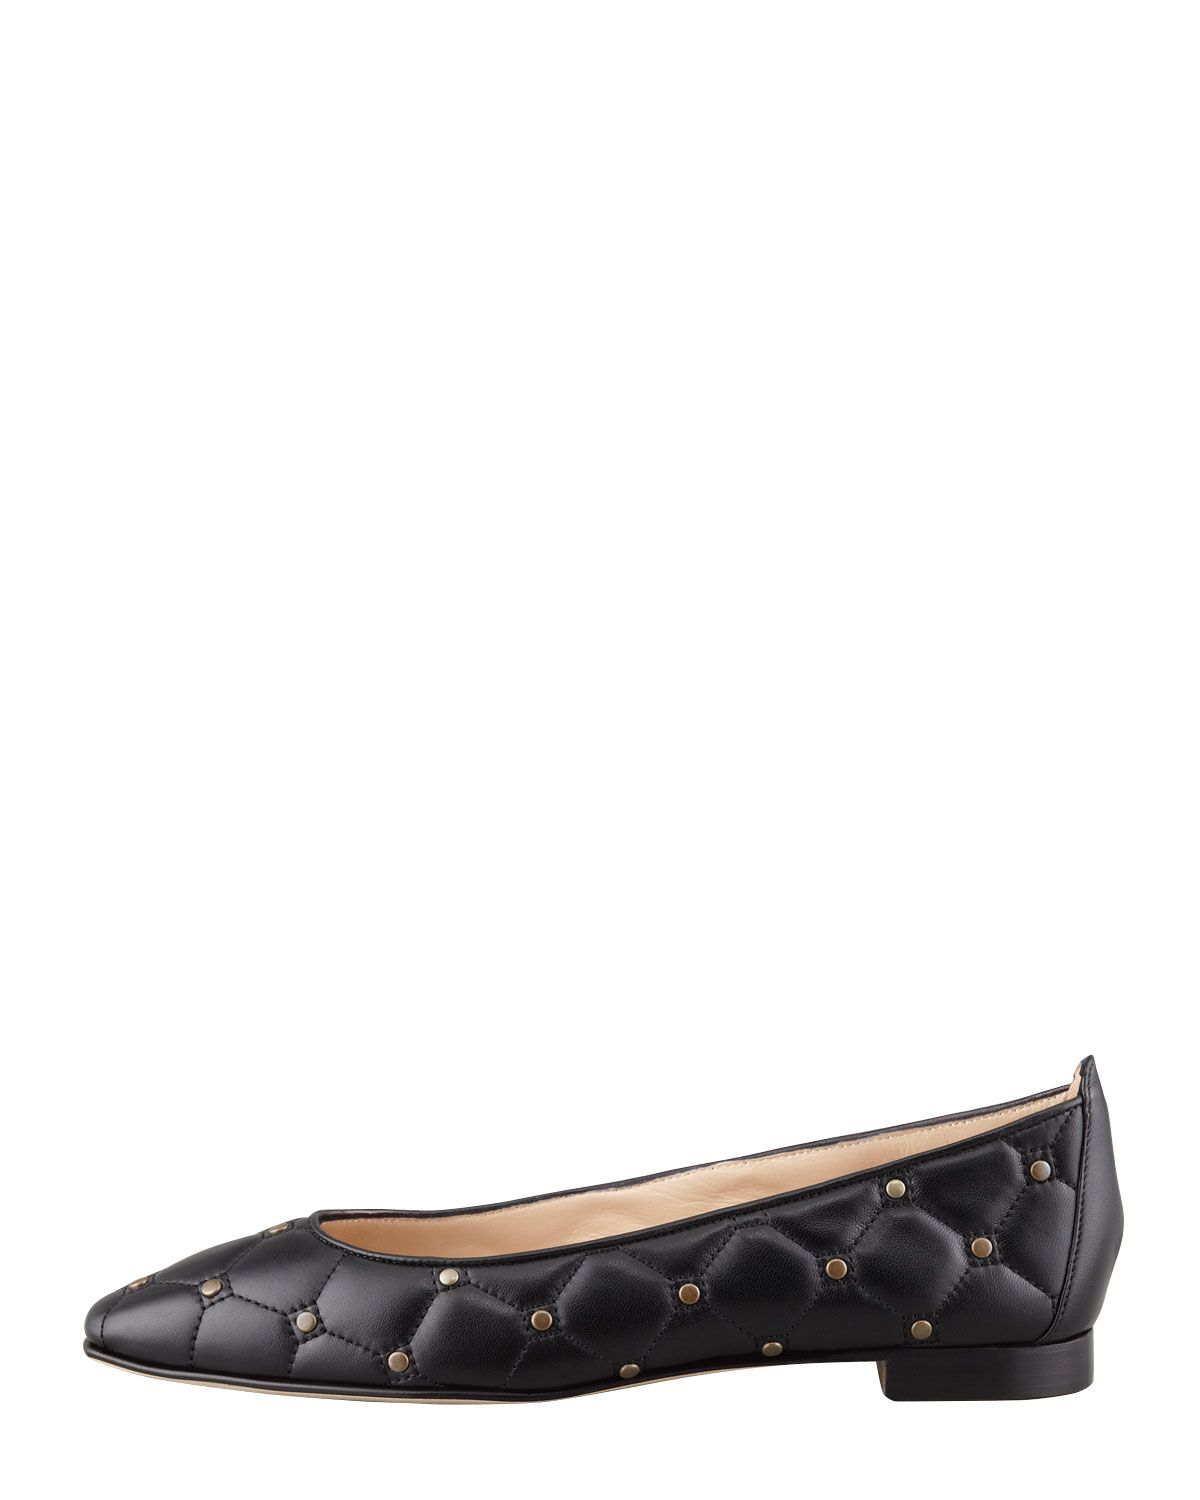 quilted patent leather pump | MANOLO BLAHNIK Womens Black Giungla Quilted Leather Skimmer